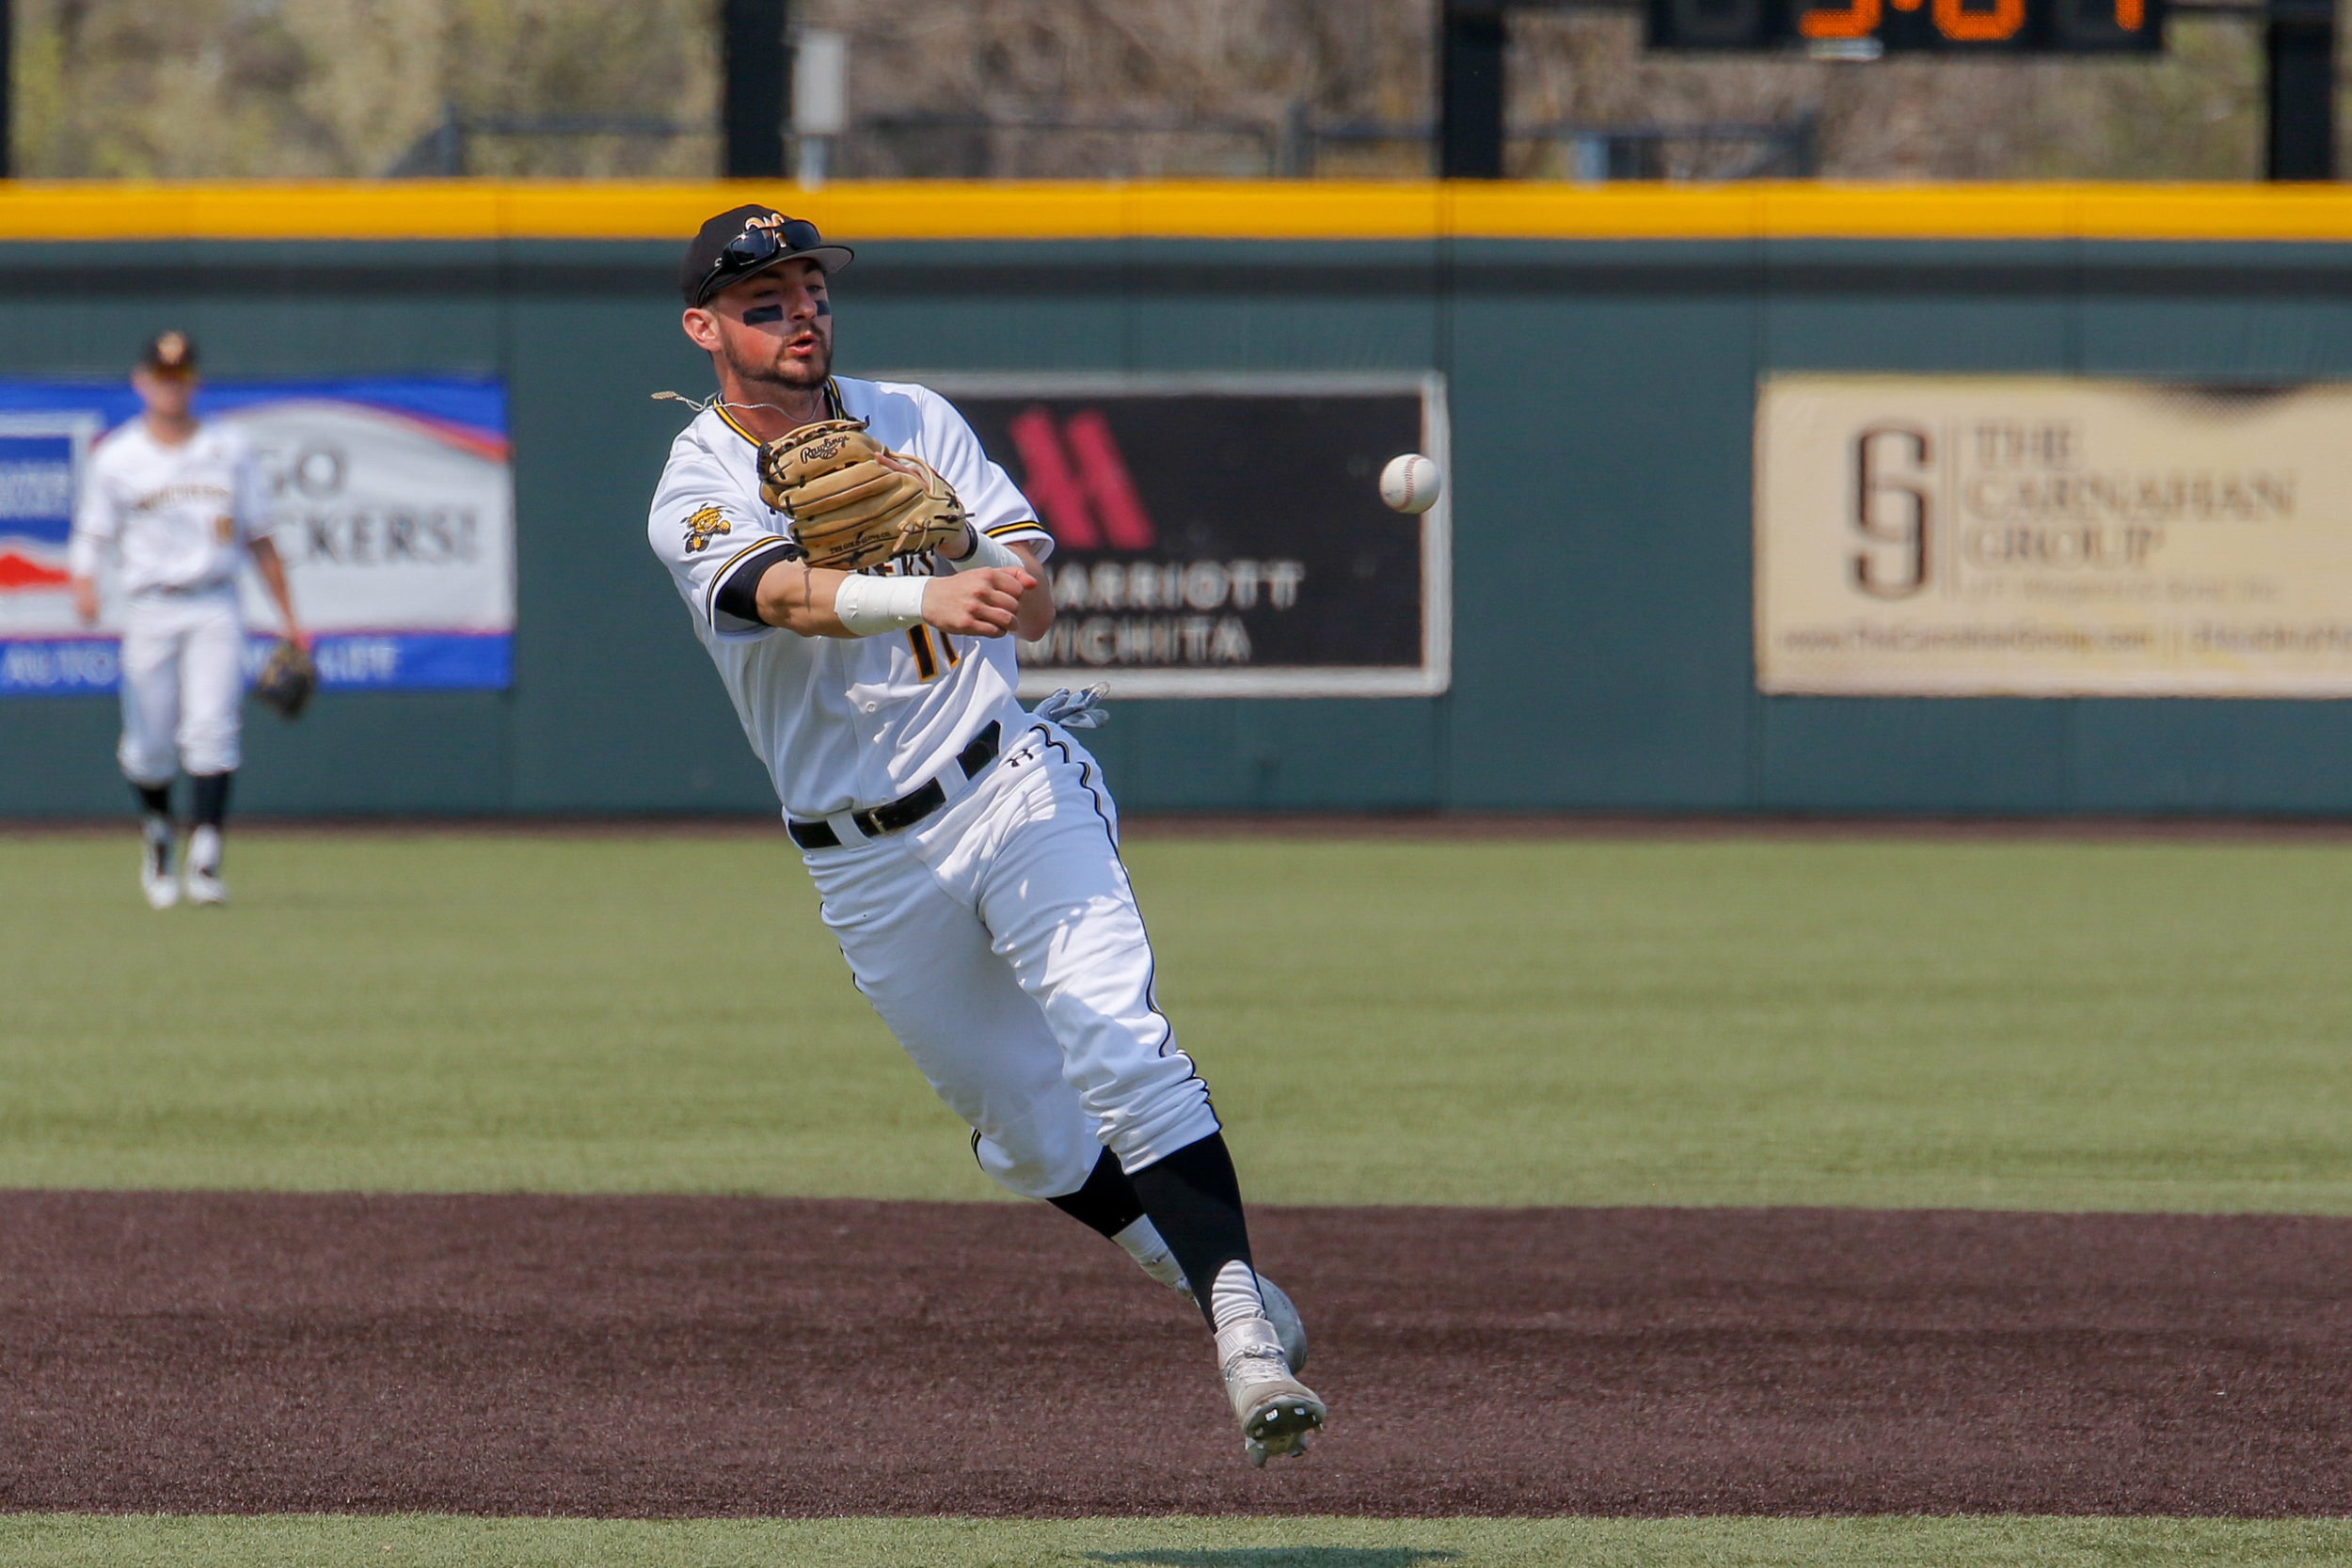 Wichita State's Trey Vickers throws to first base against UConn on April 13, 2018 at Eck Stadium.